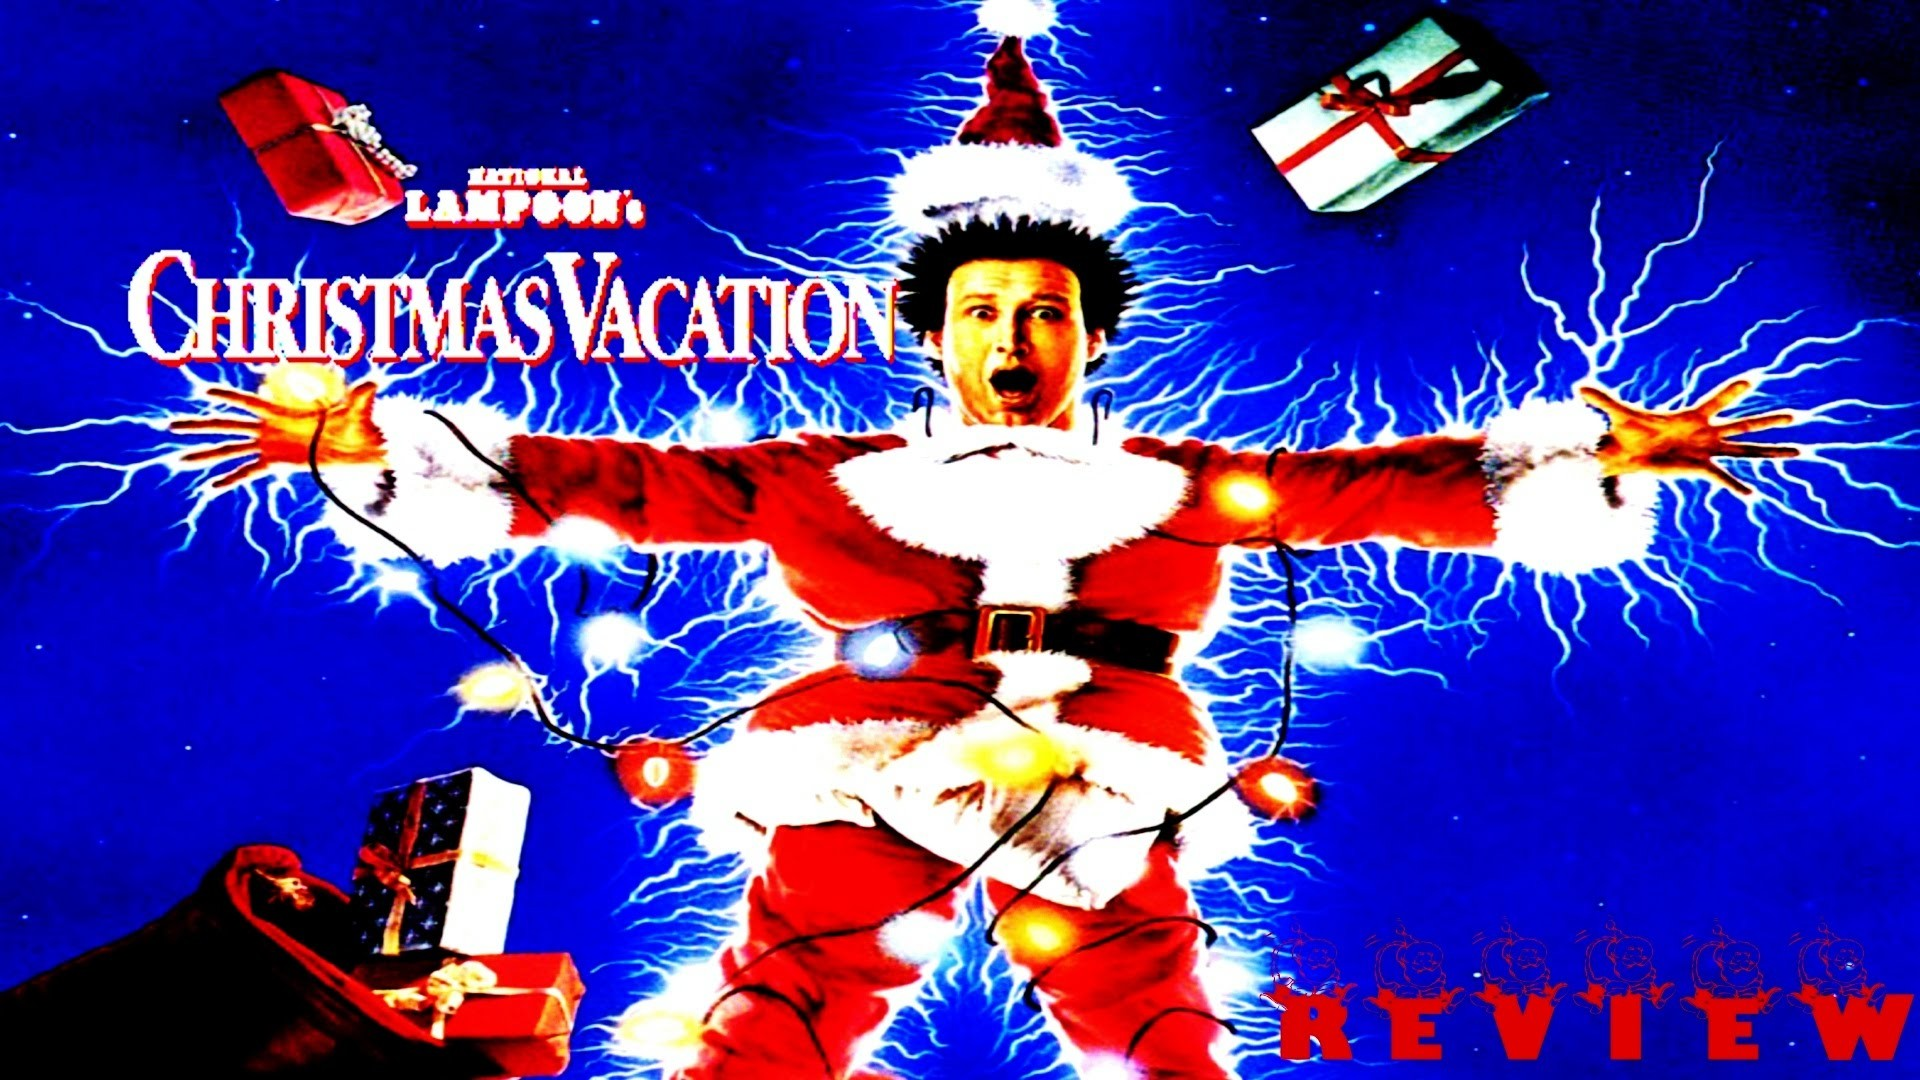 Christmas Vacation Wallpaper (78+ images)